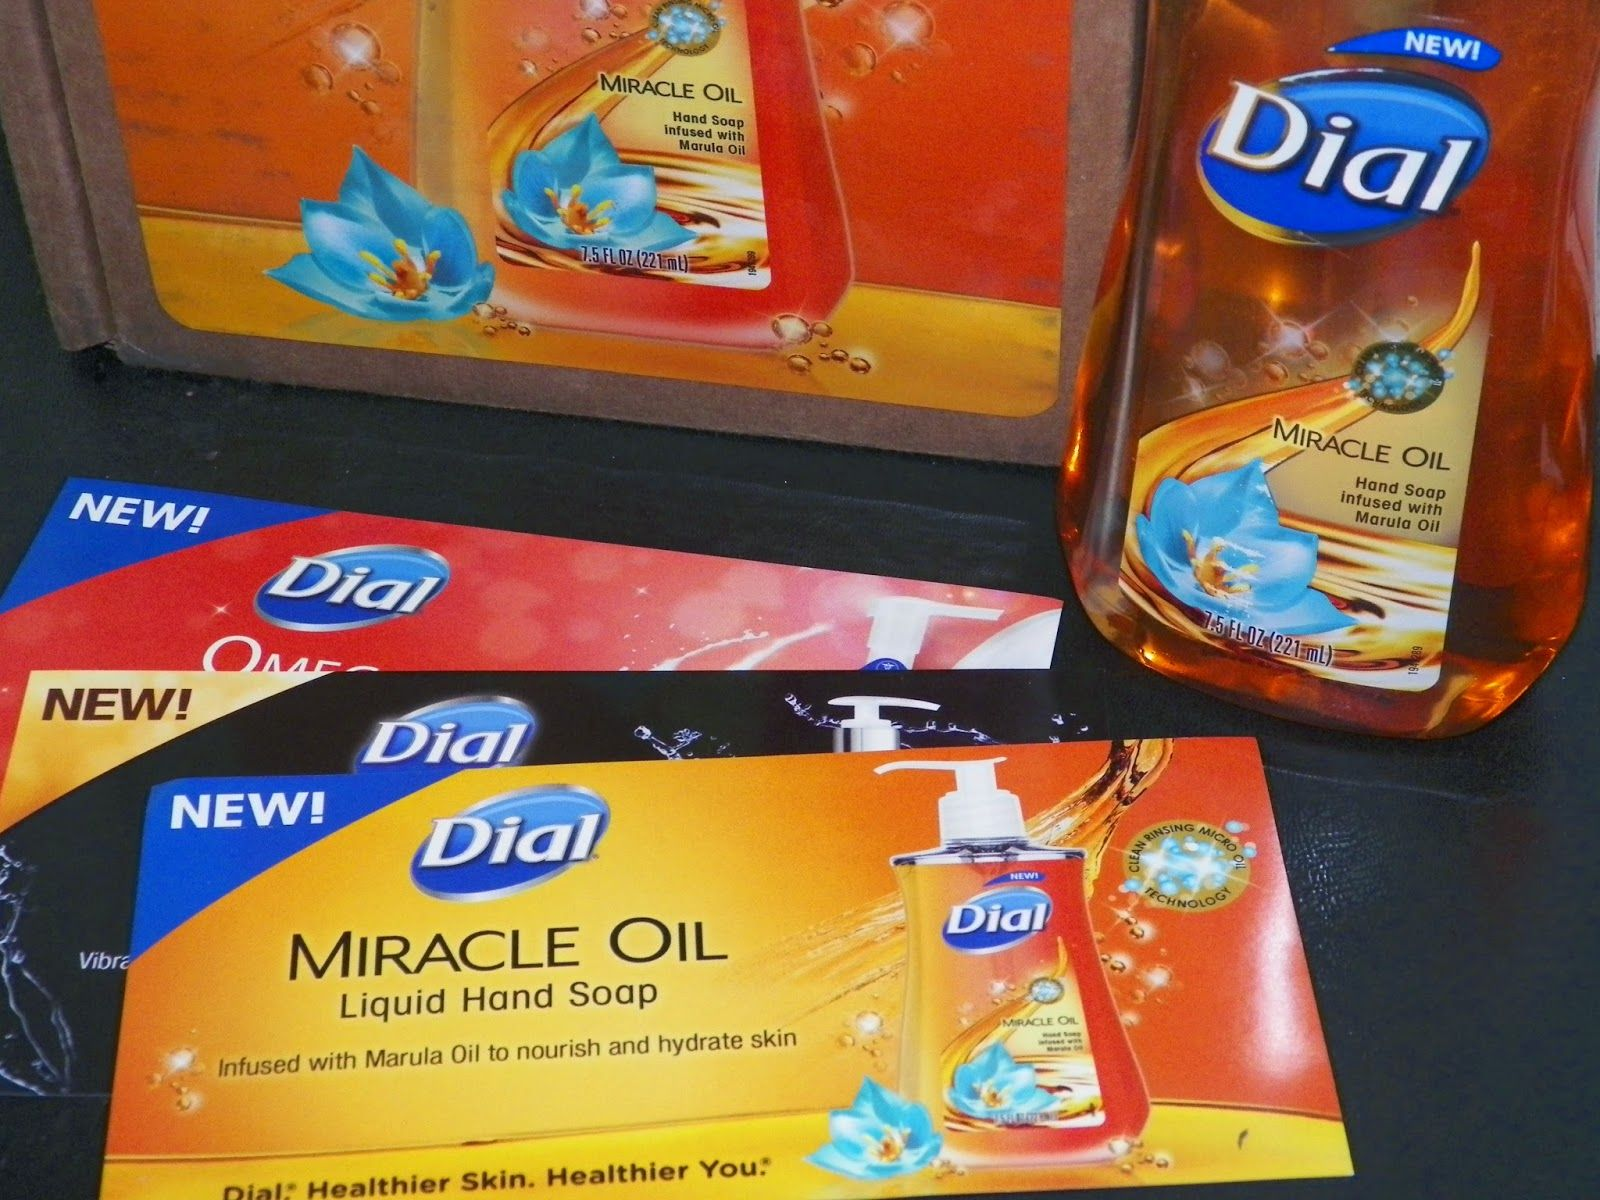 Dial miracle oil liquid hand soap review giveaway 3